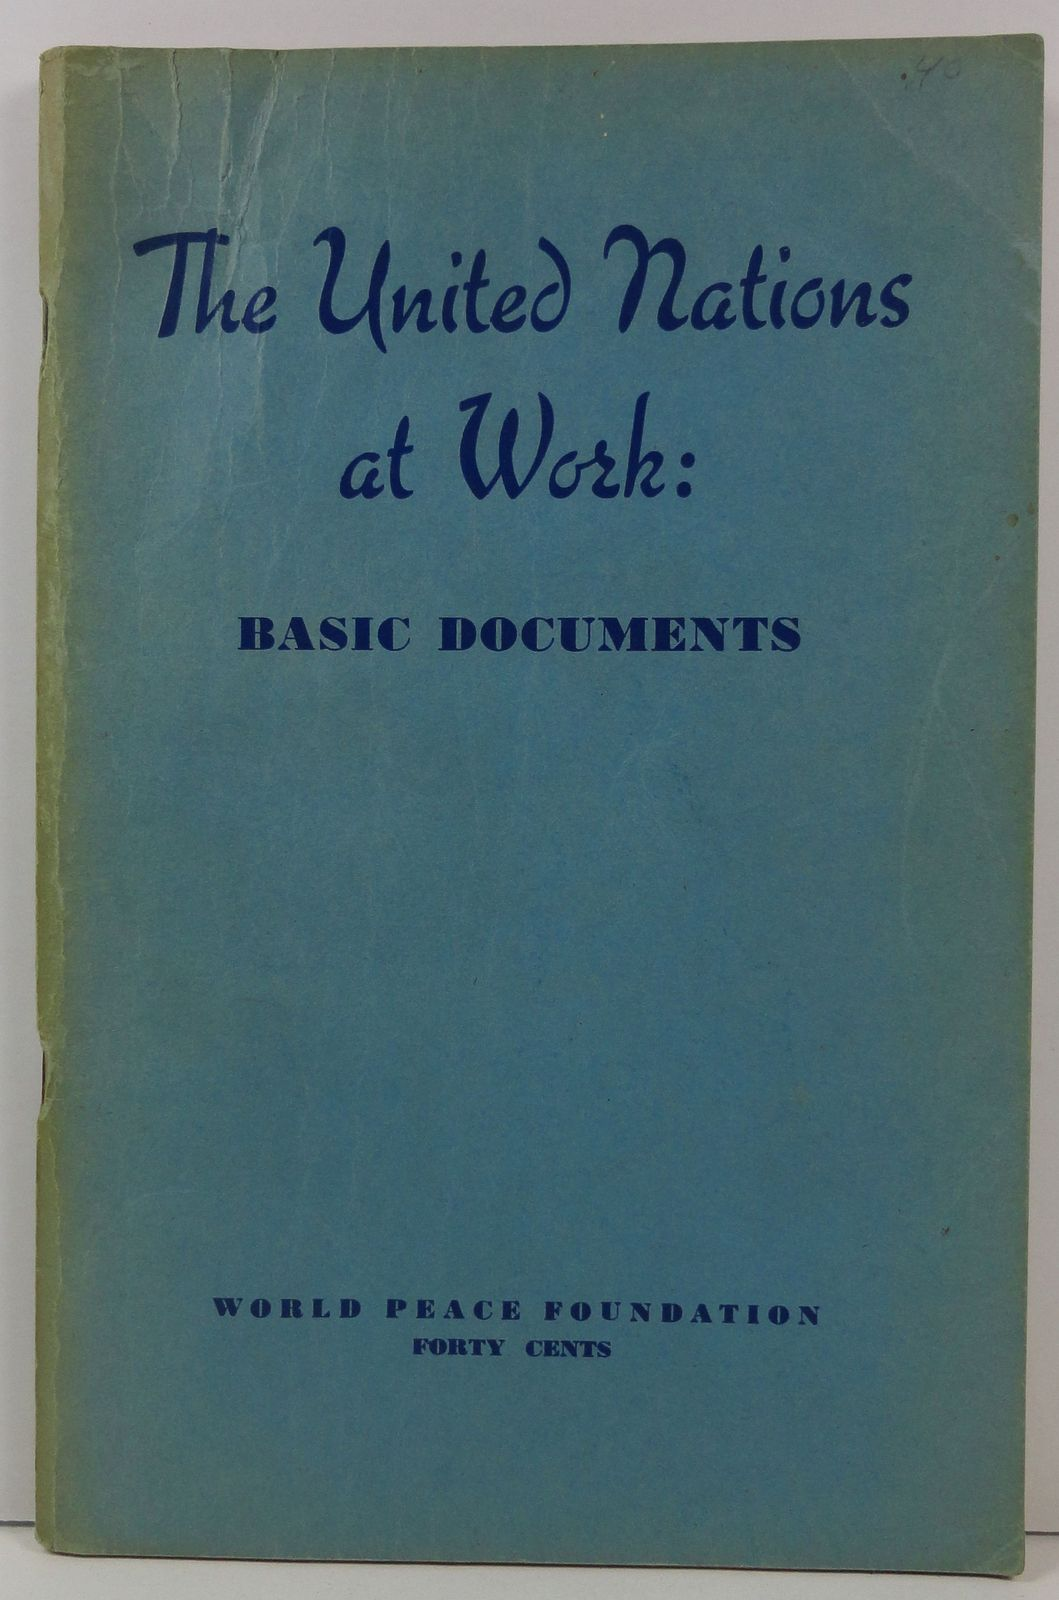 The United Nations at Work: Basic Documents 1947